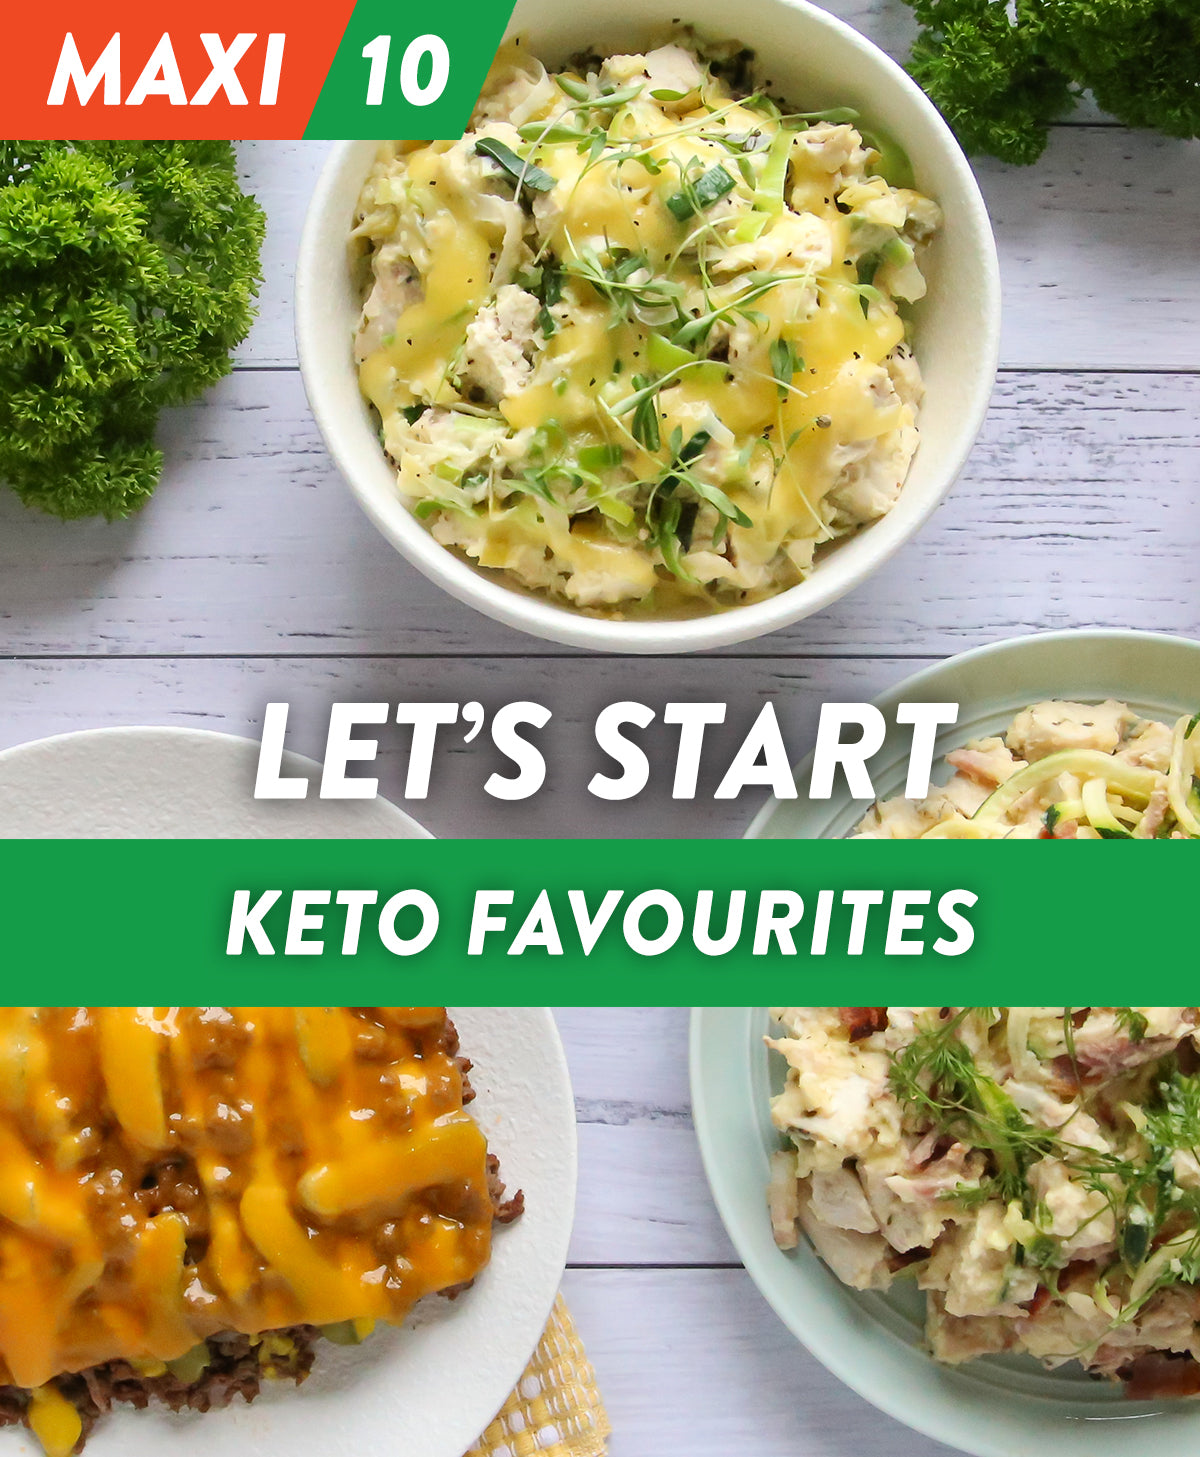 Let's Start - Keto Favourites MAXI 10